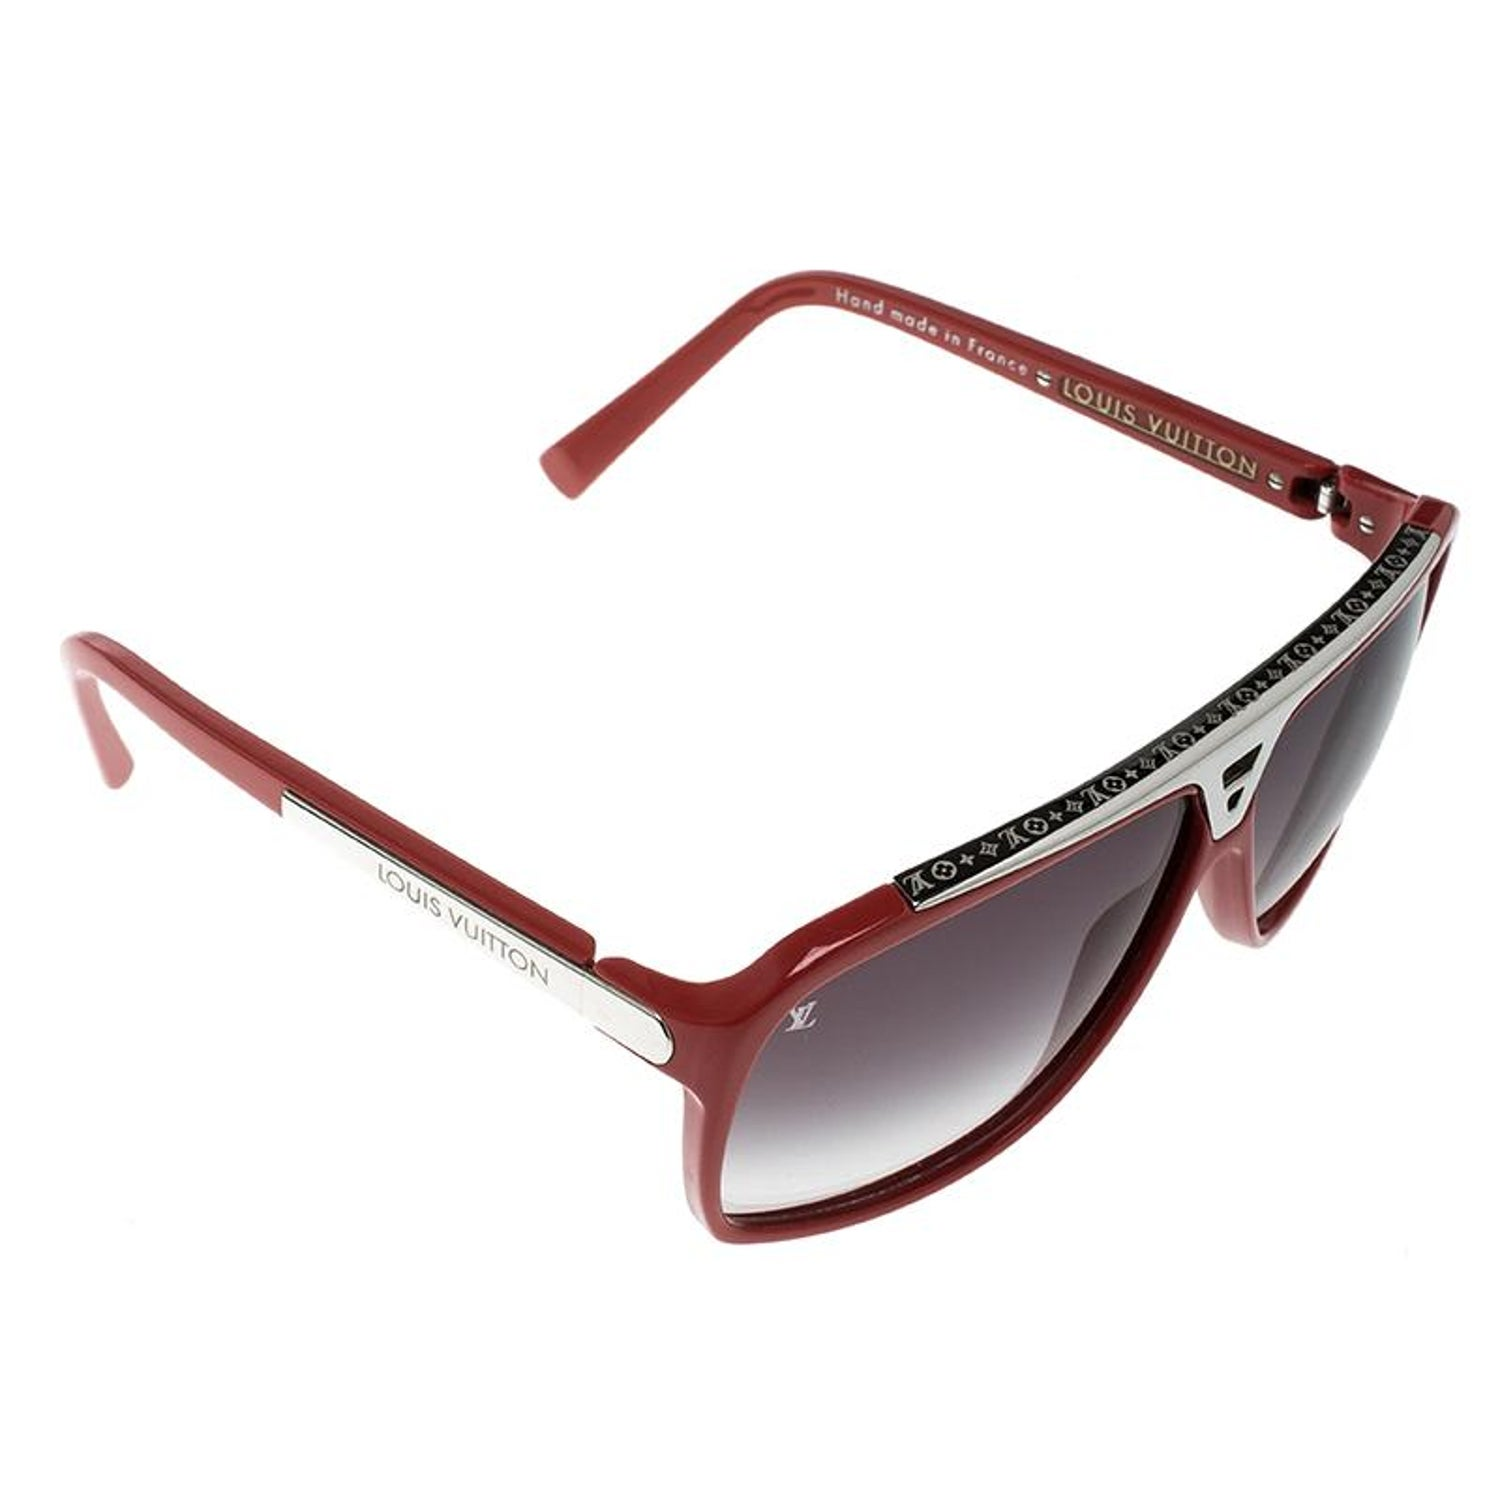 8a5c40bfbf4c Louis Vuitton Red Black Gradient Z0286W Evidence Sunglasses at 1stdibs